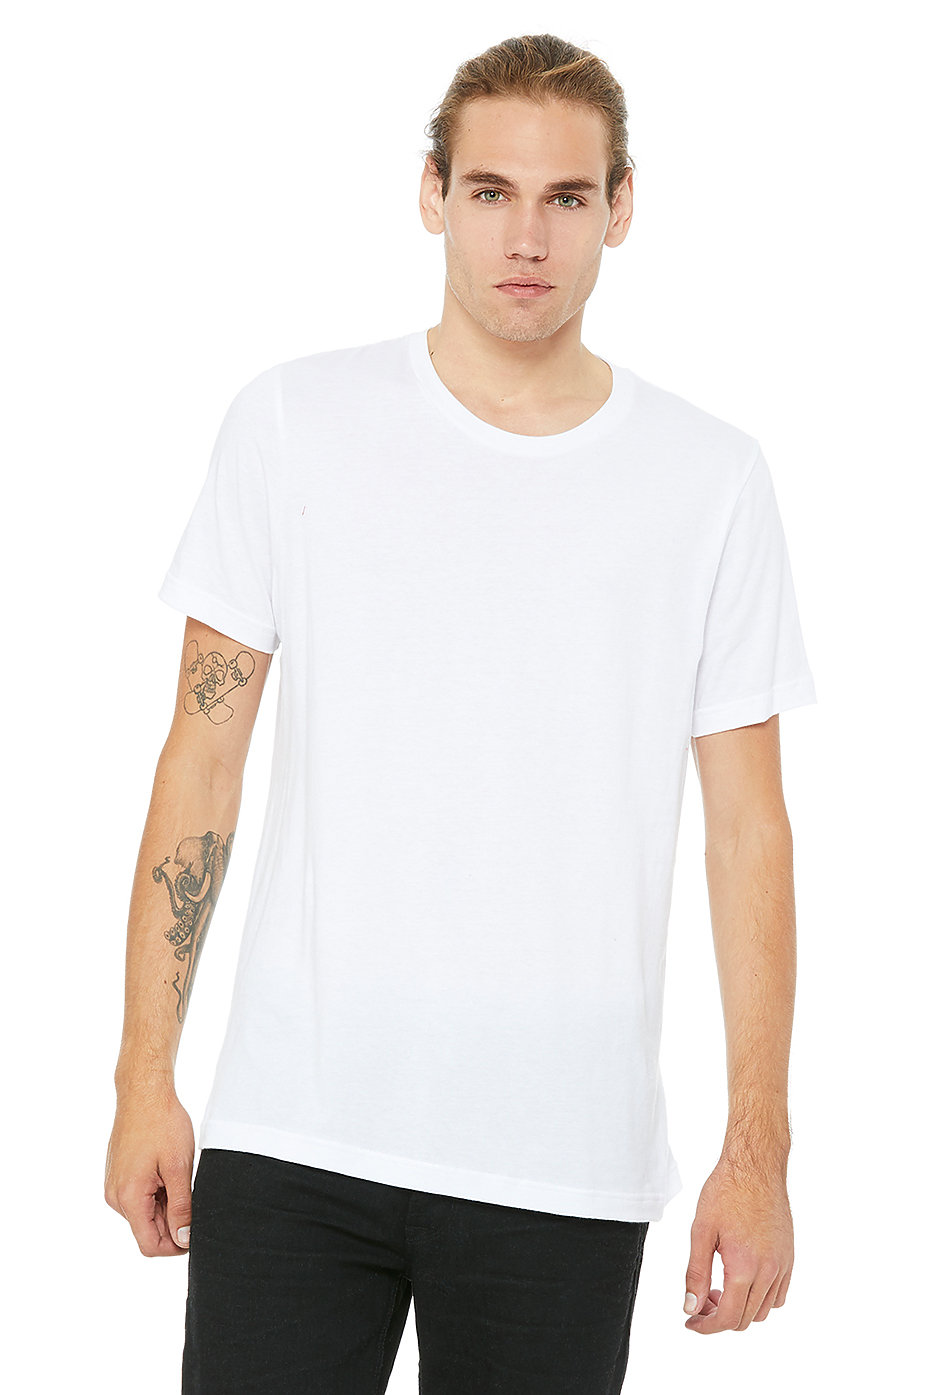 4070ec3fd0c1 Jersey T Shirt | Wholesale Blank T Shirts | Unisex Short Sleeve T ...